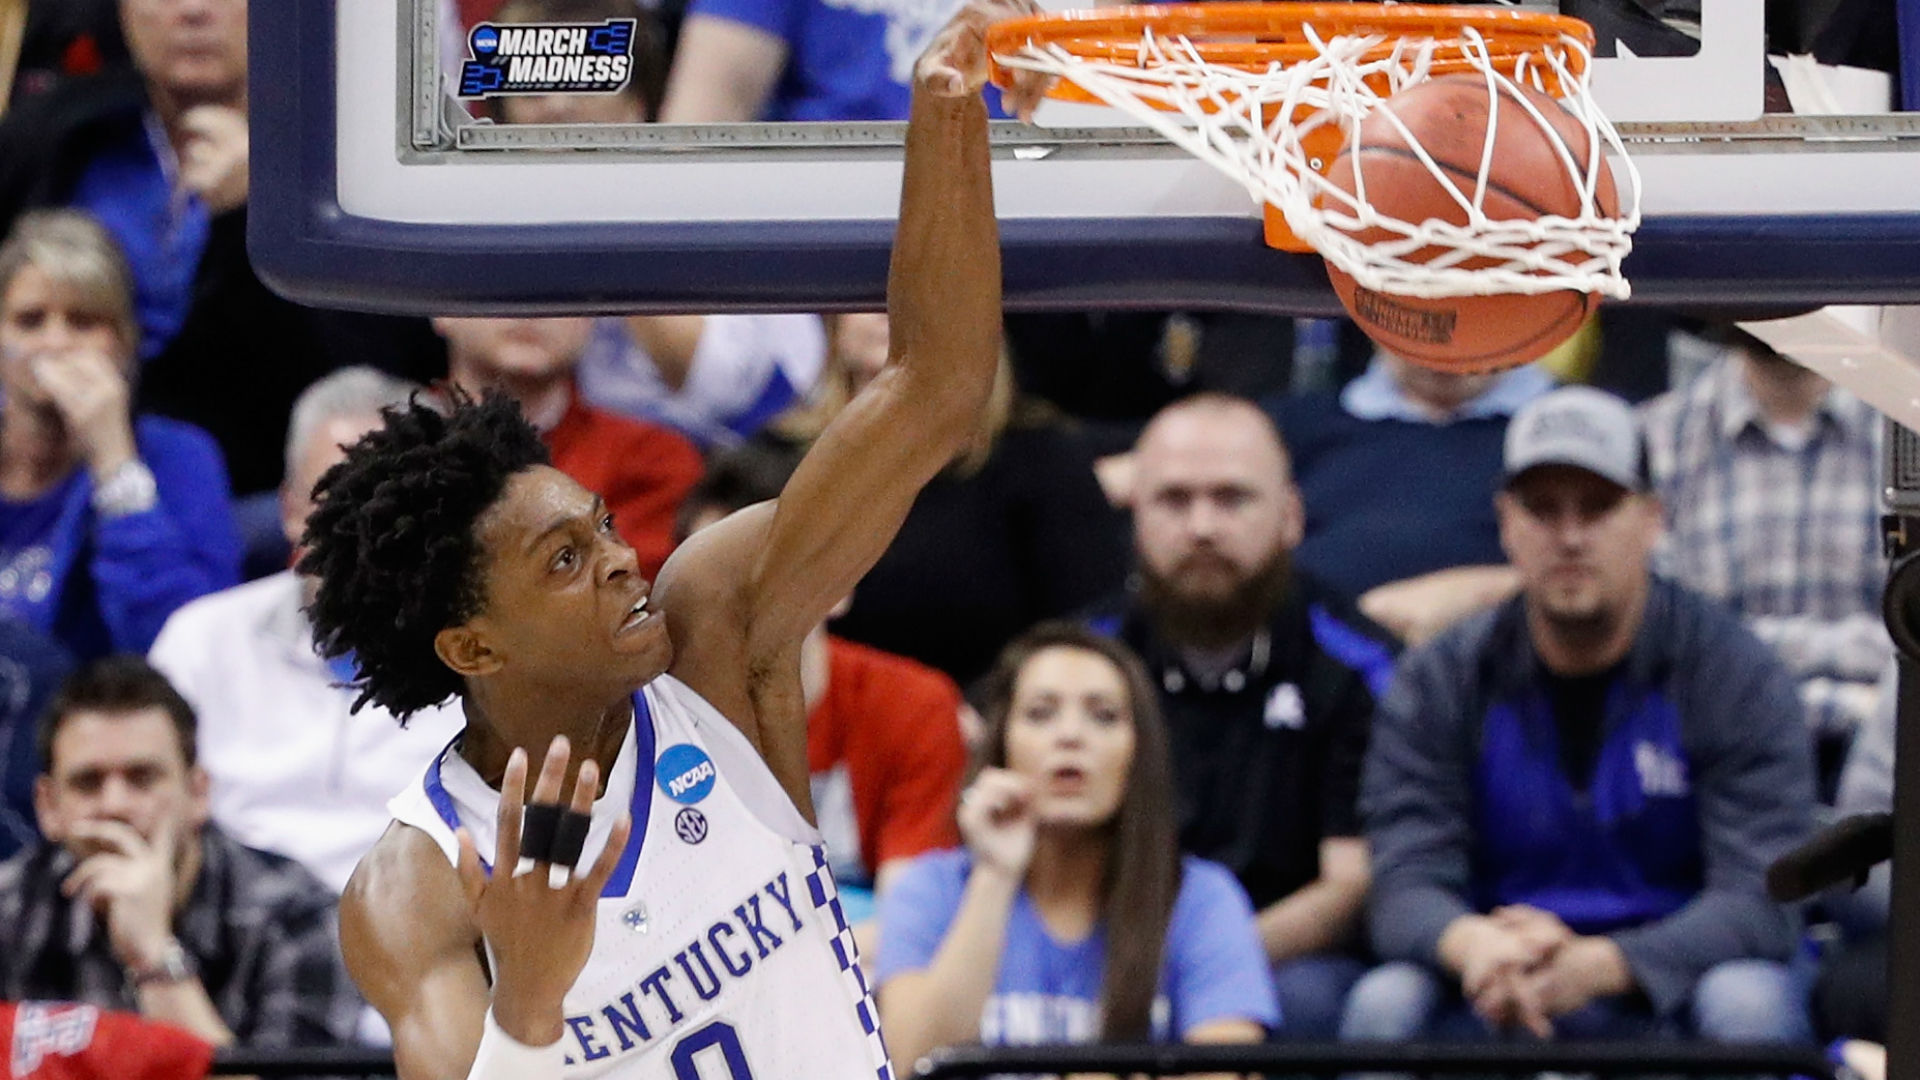 North Carolina Basketball returns to the final four in dramatic fashion